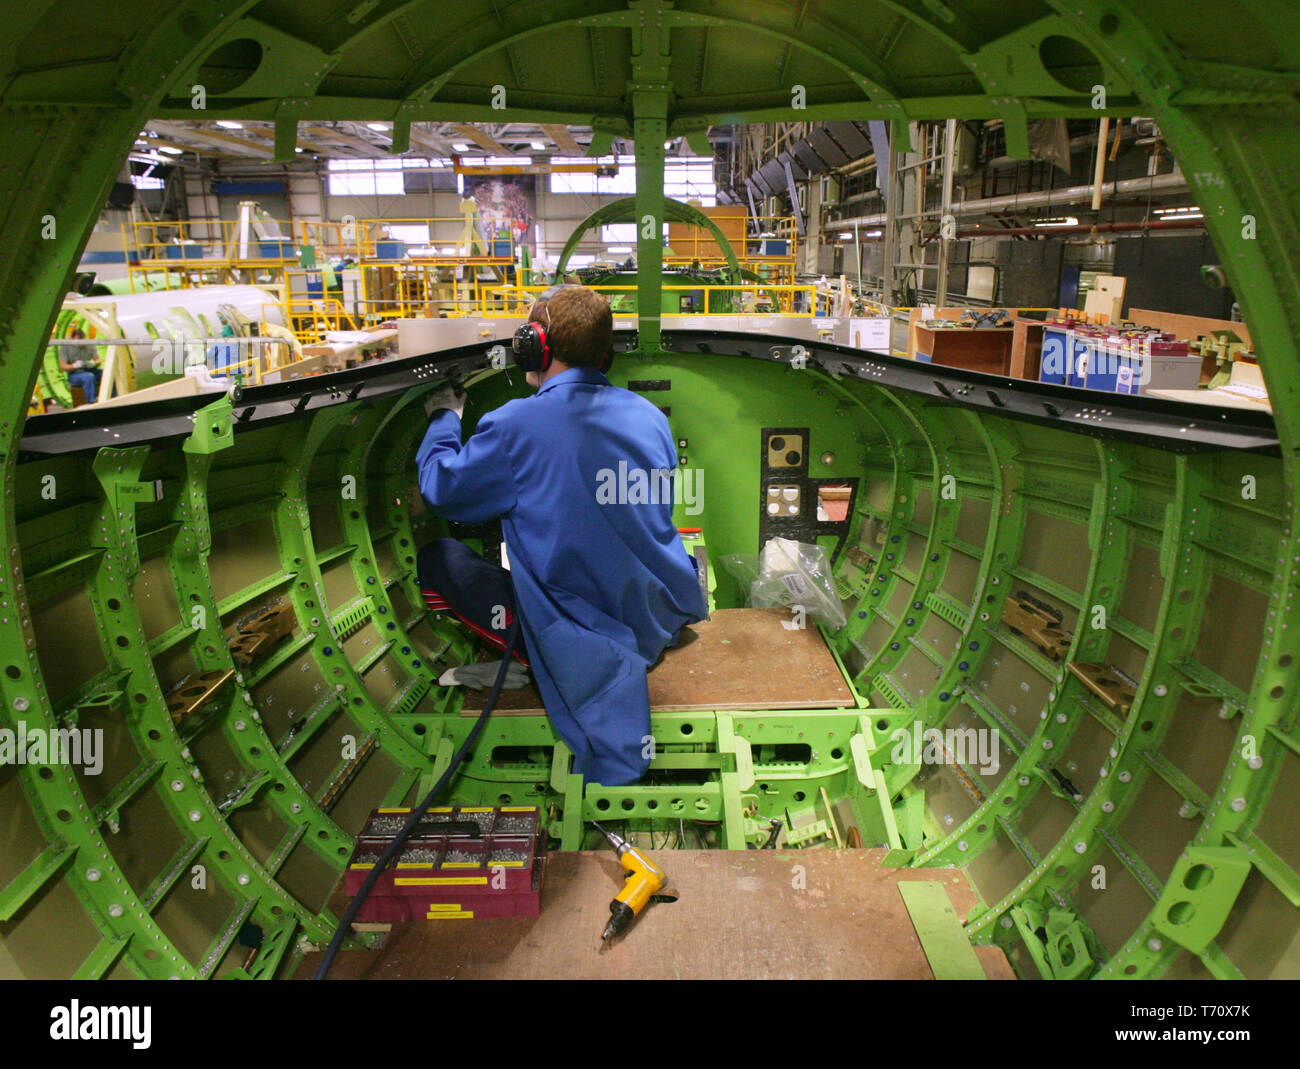 """FILE PHOTO - Bombardier aircraft electricians work on Learjet 40 XR aircraft on the production line in Belfast, Northern Ireland, on Monday, Jan. 21, 2008. Almost 1,000 jobs are to go at Bombardier Aerospace factories in Northern Ireland, Thursday, April 2, 2009. A total of 975 staff are losing their jobs, with 310 permanent staff and all 665 agency staff being made redundant. A company statement said it was cutting aircraft production rates and reducing manpower at all its sites because of an """"unprecedented recession"""".  Paul McErlane Photography Stock Photo"""